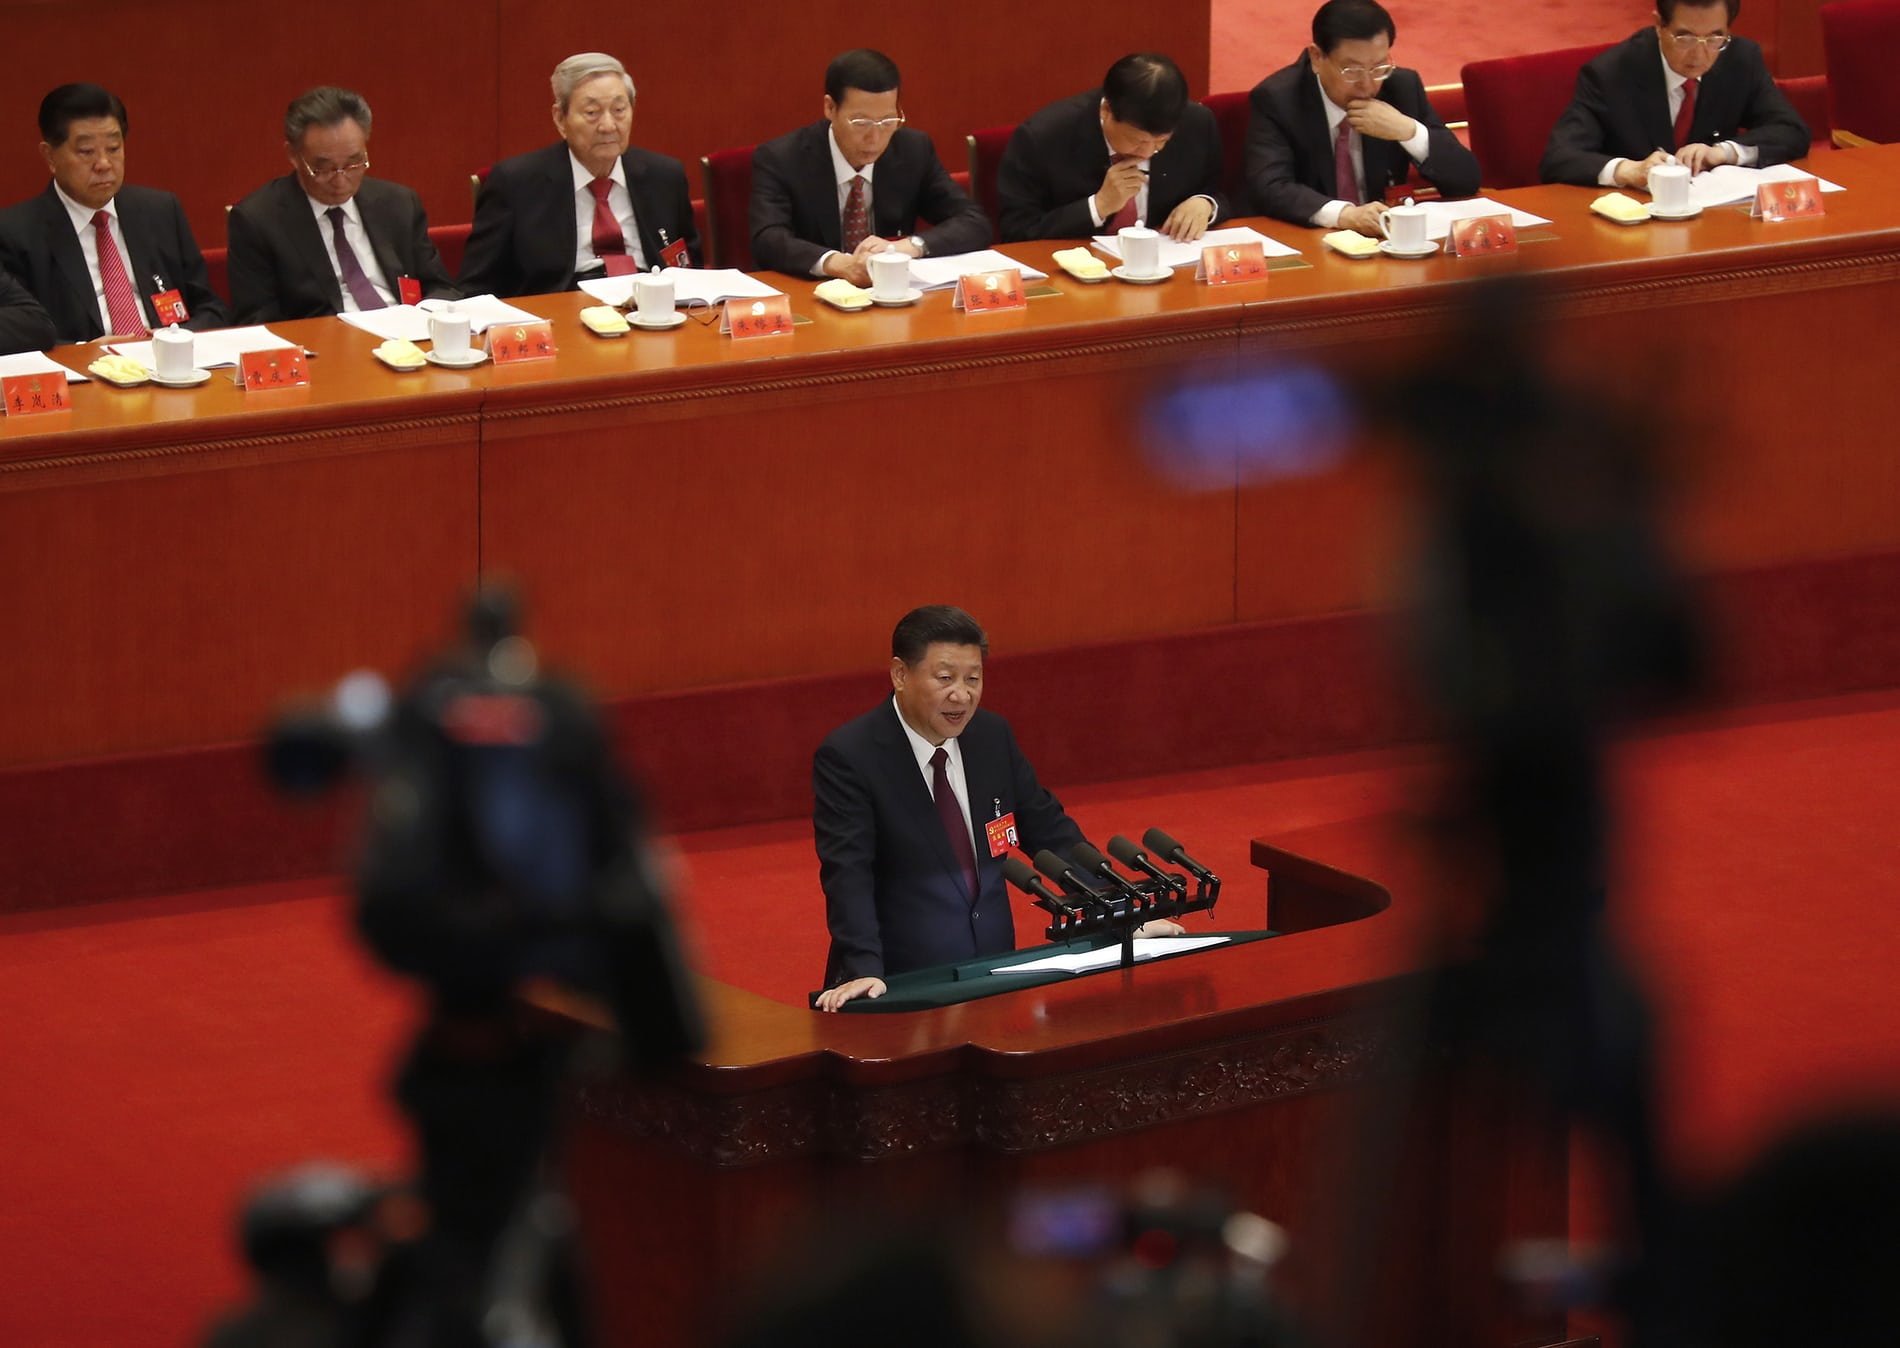 The 19th five-yearly congress of the Communist Party of China opened on Oct 18 in the Great Hall of the People in Beijing. (Photo courtesy: theguardian)